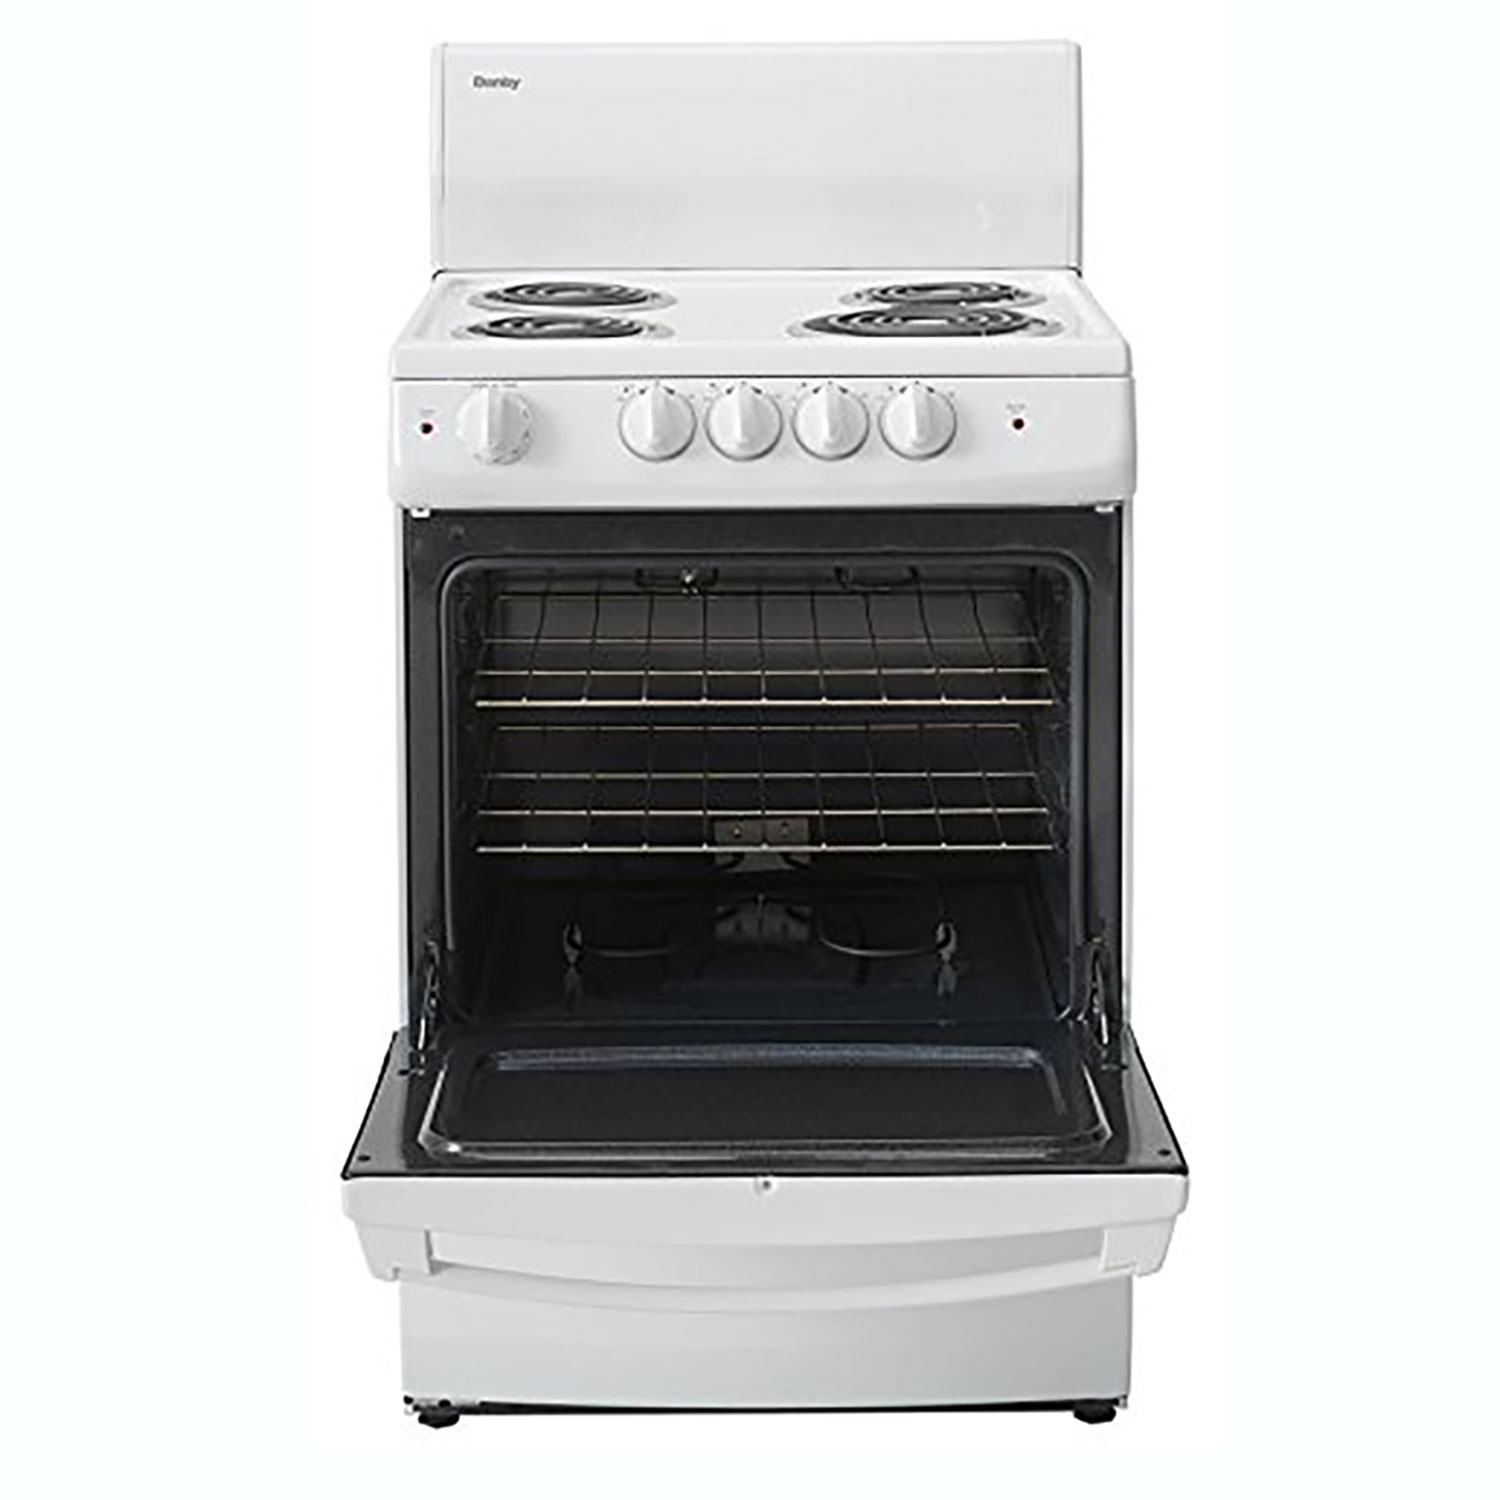 white electric range. Danby 3 Cubic Feet Apartment Compact Freestanding Electric Range Oven, White